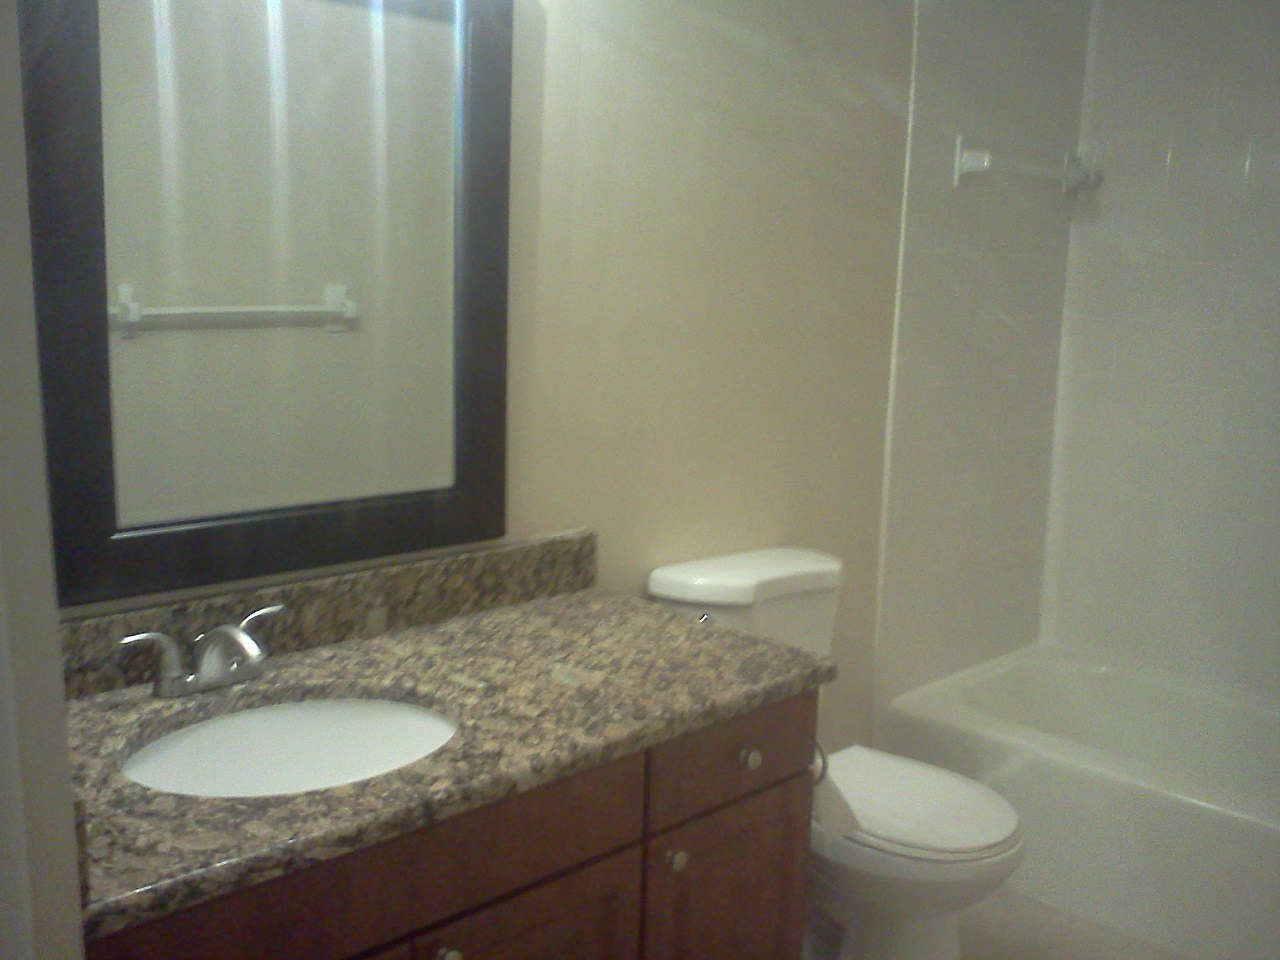 Bathroom at the WestShore Apartments in Tampa, FL